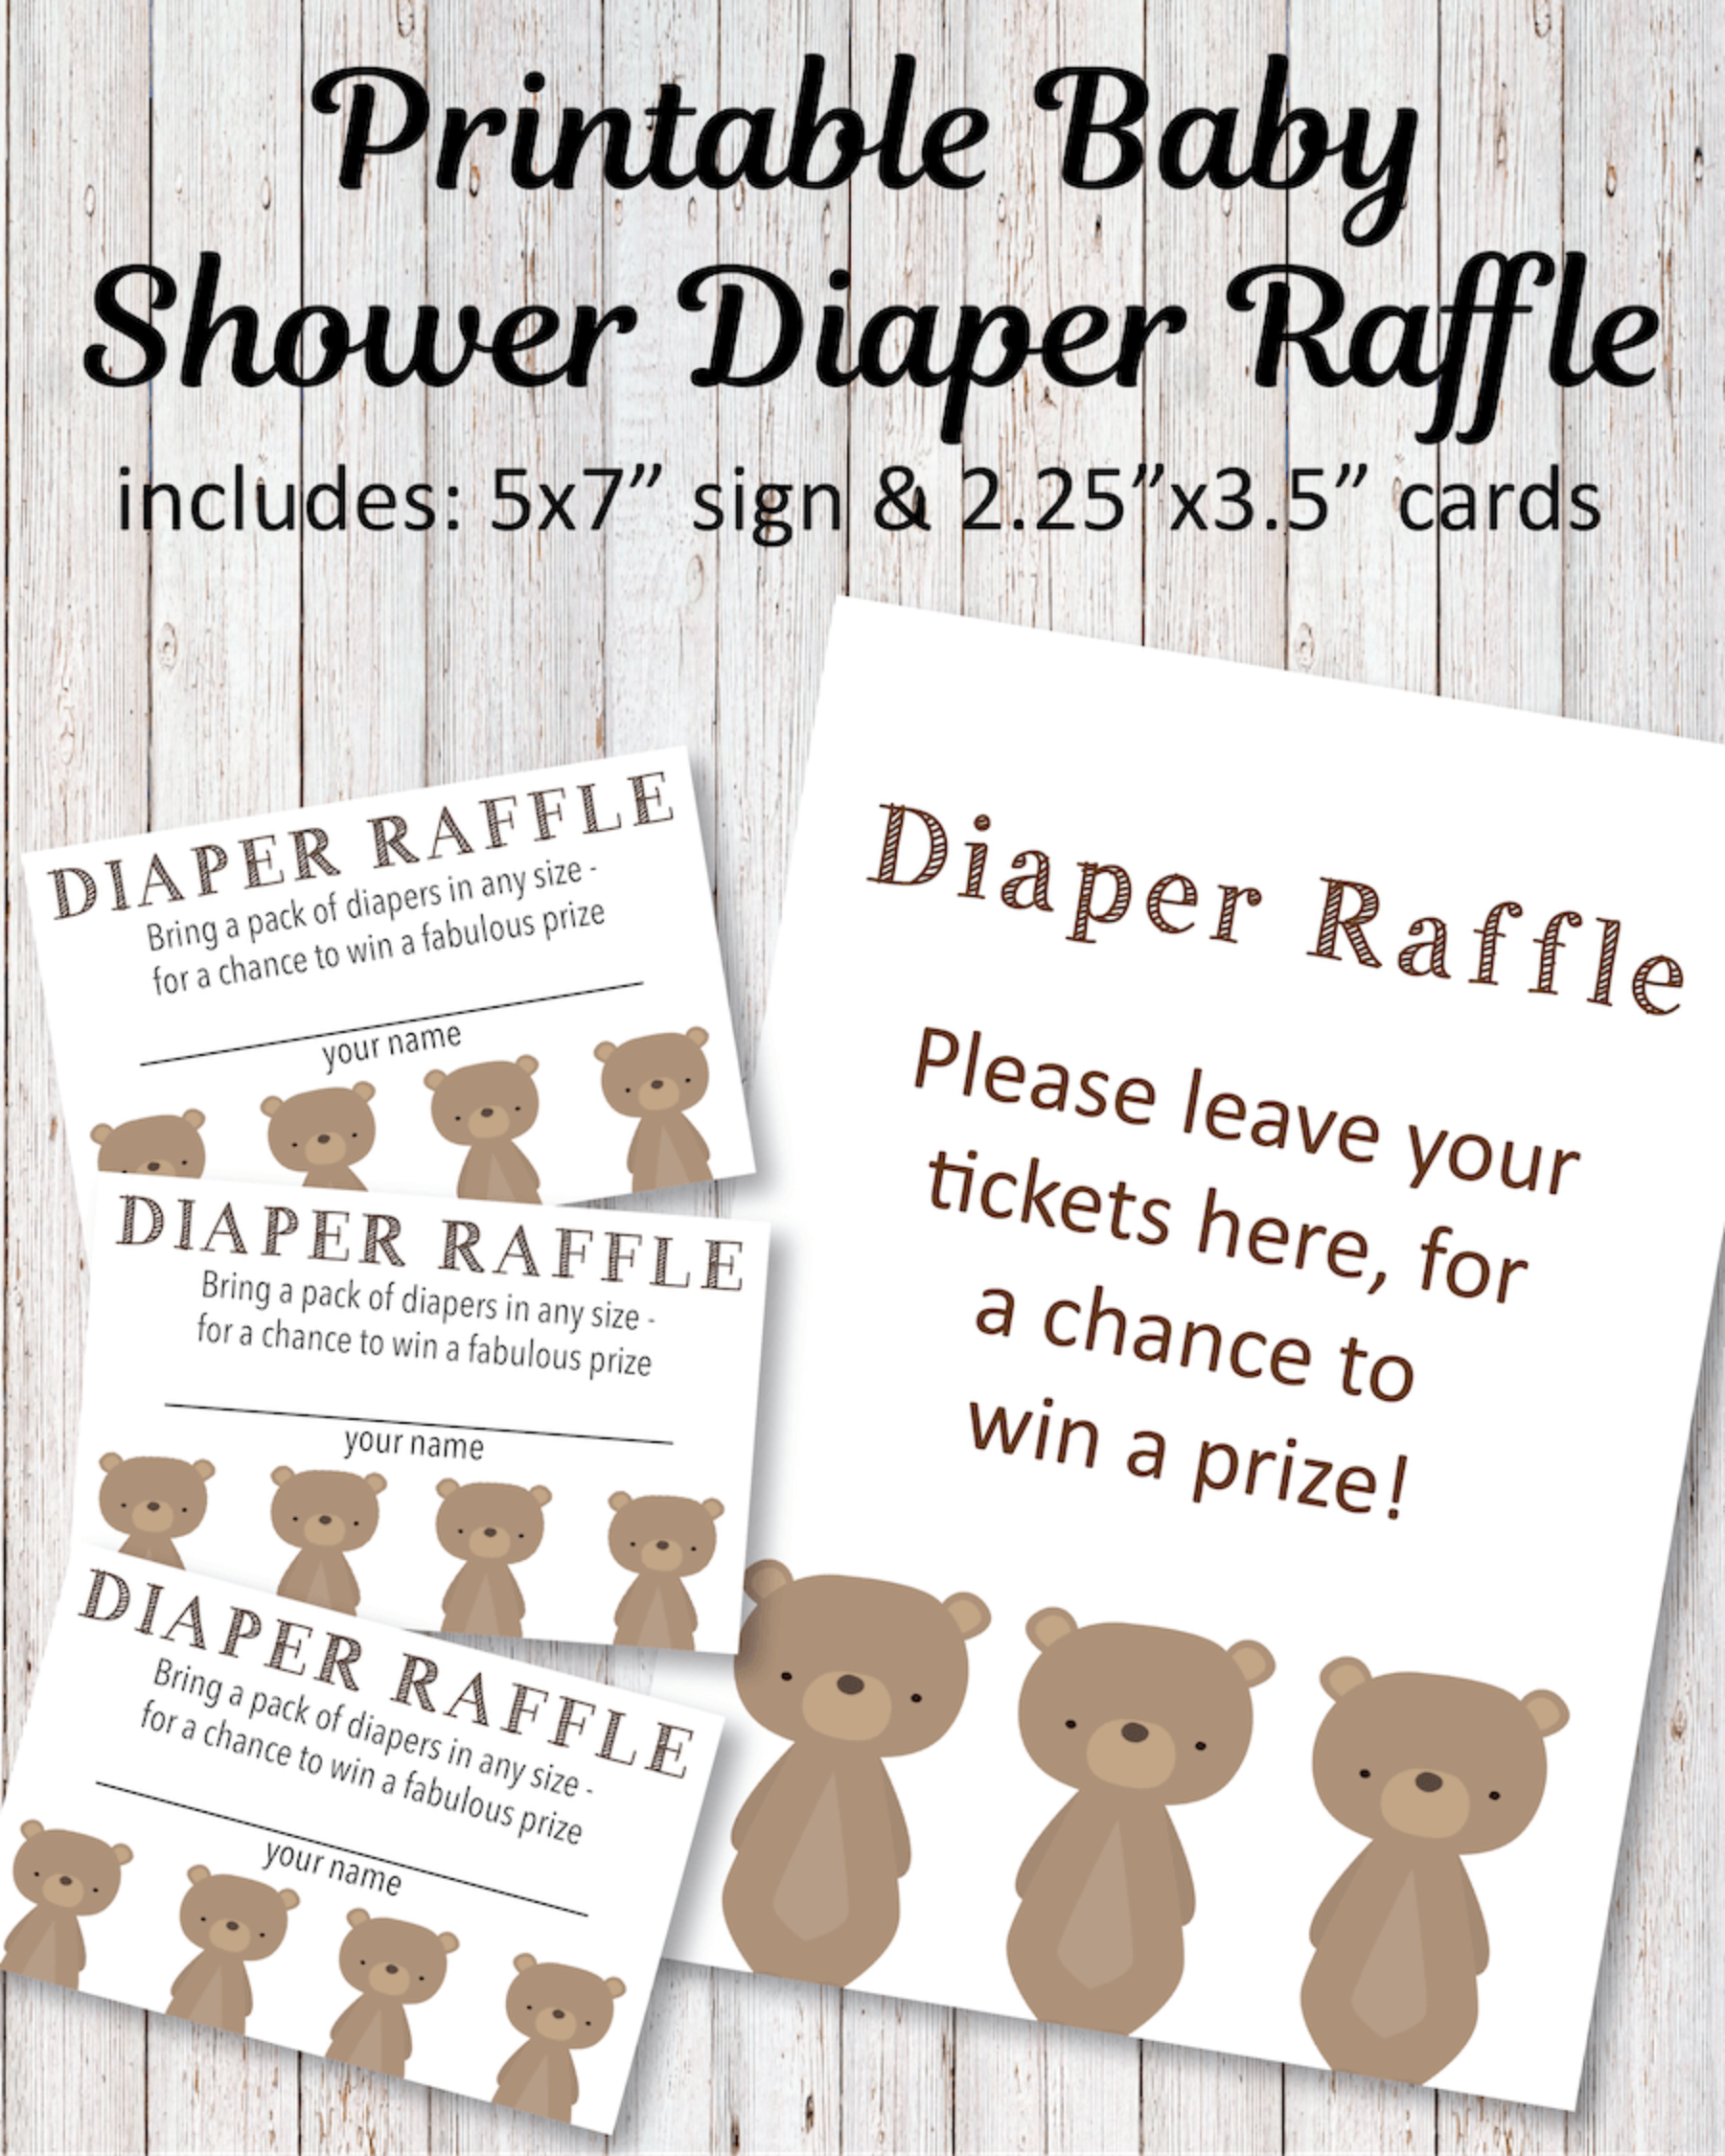 photo about Tickets Printable named Printable Child Shower Diaper Raffle Tickets - Woodland Go through Topic - Print It Kid